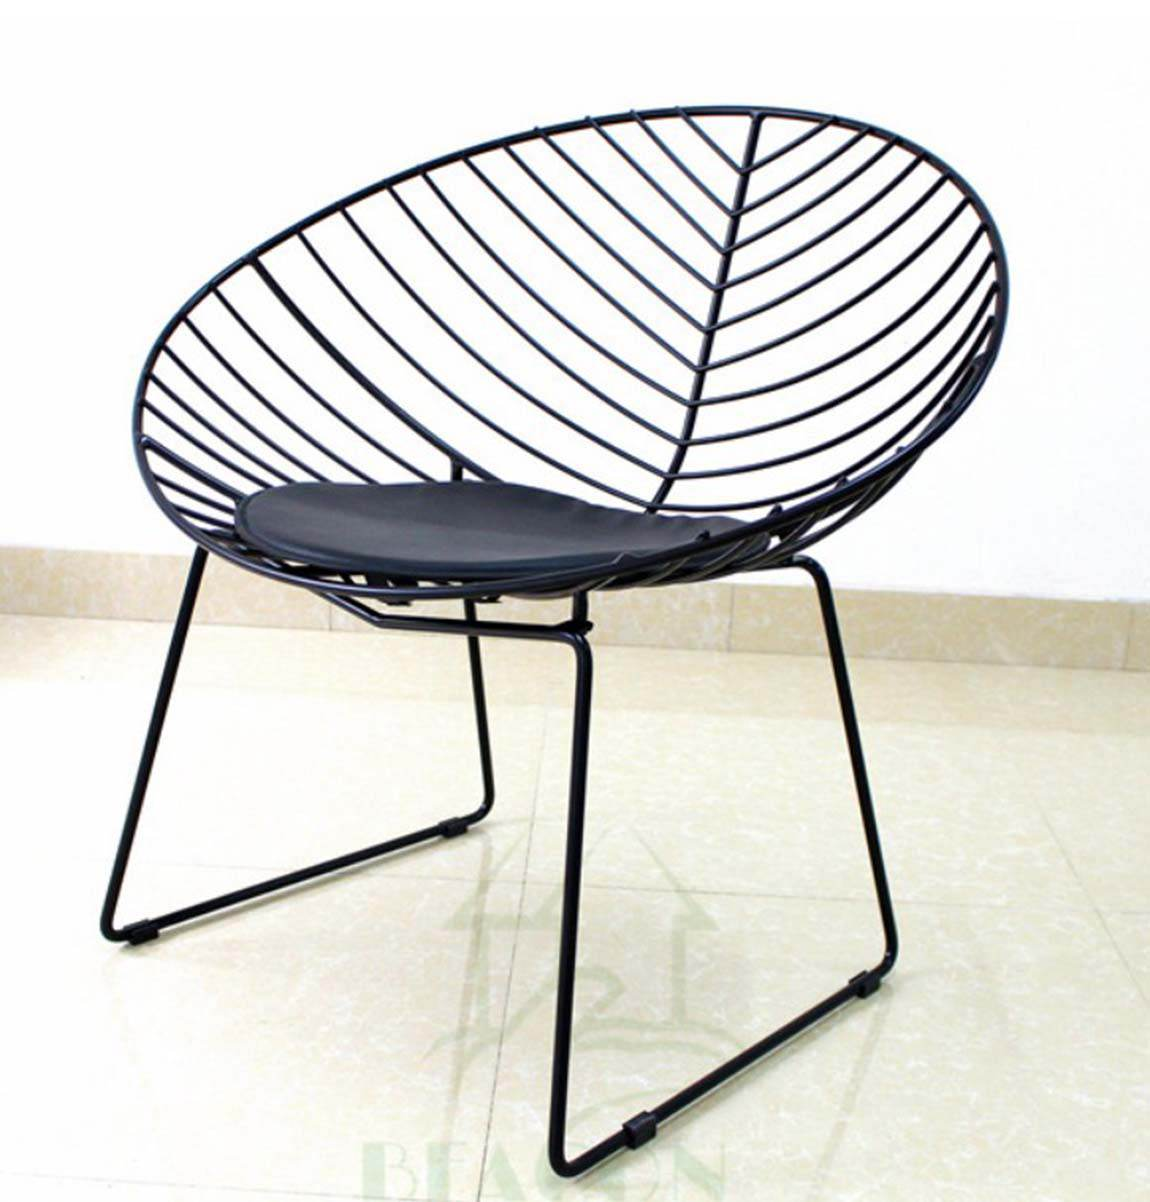 ghe-sat-nghe-thuat-wire-chair-1